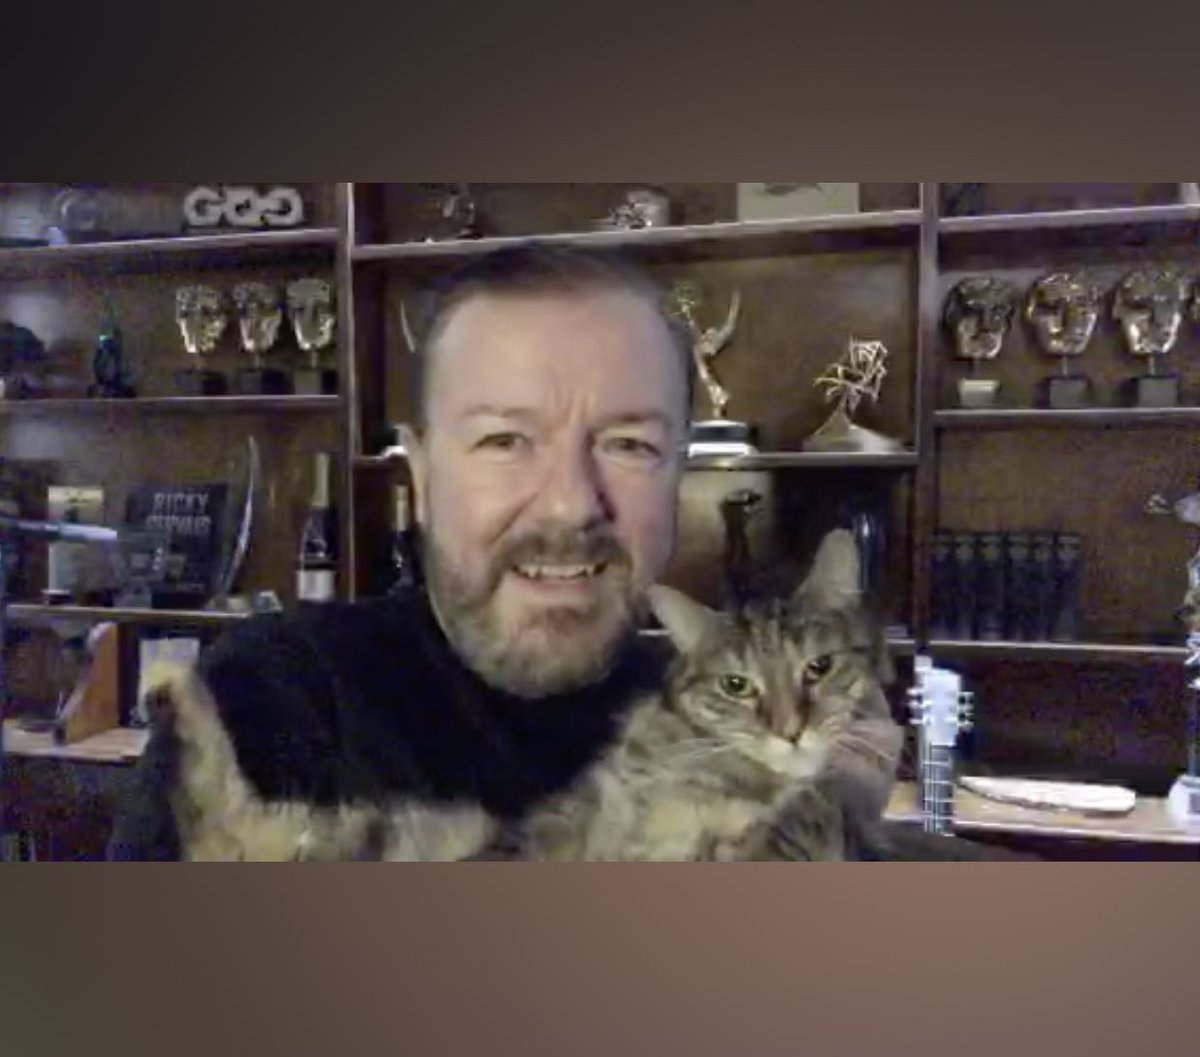 Woohoo great to see Colin Covid and @PickliciousF again 🦠🐱 Bless you not wanting to read the messages out incase you get emotional 😫 Thanks for answering my question, I think you should put my mouse on those shelves though 👌🏼🐁 @rickygervais